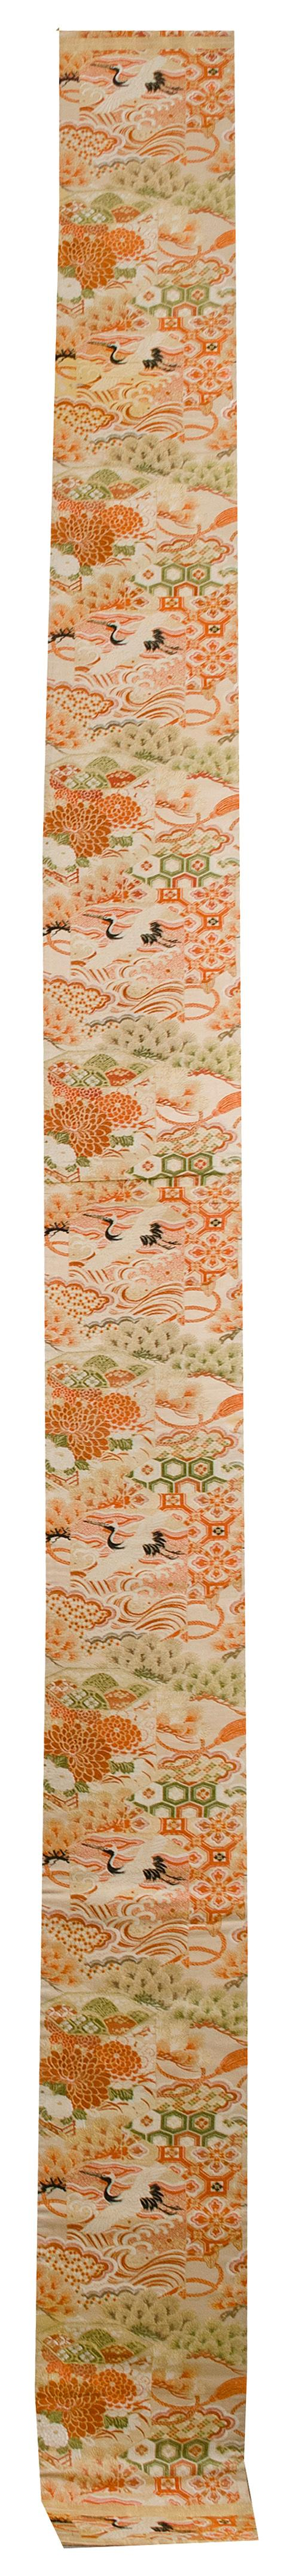 SILK BROCADE OBI With colorful crane, chrysanthemum, and pine tree design.